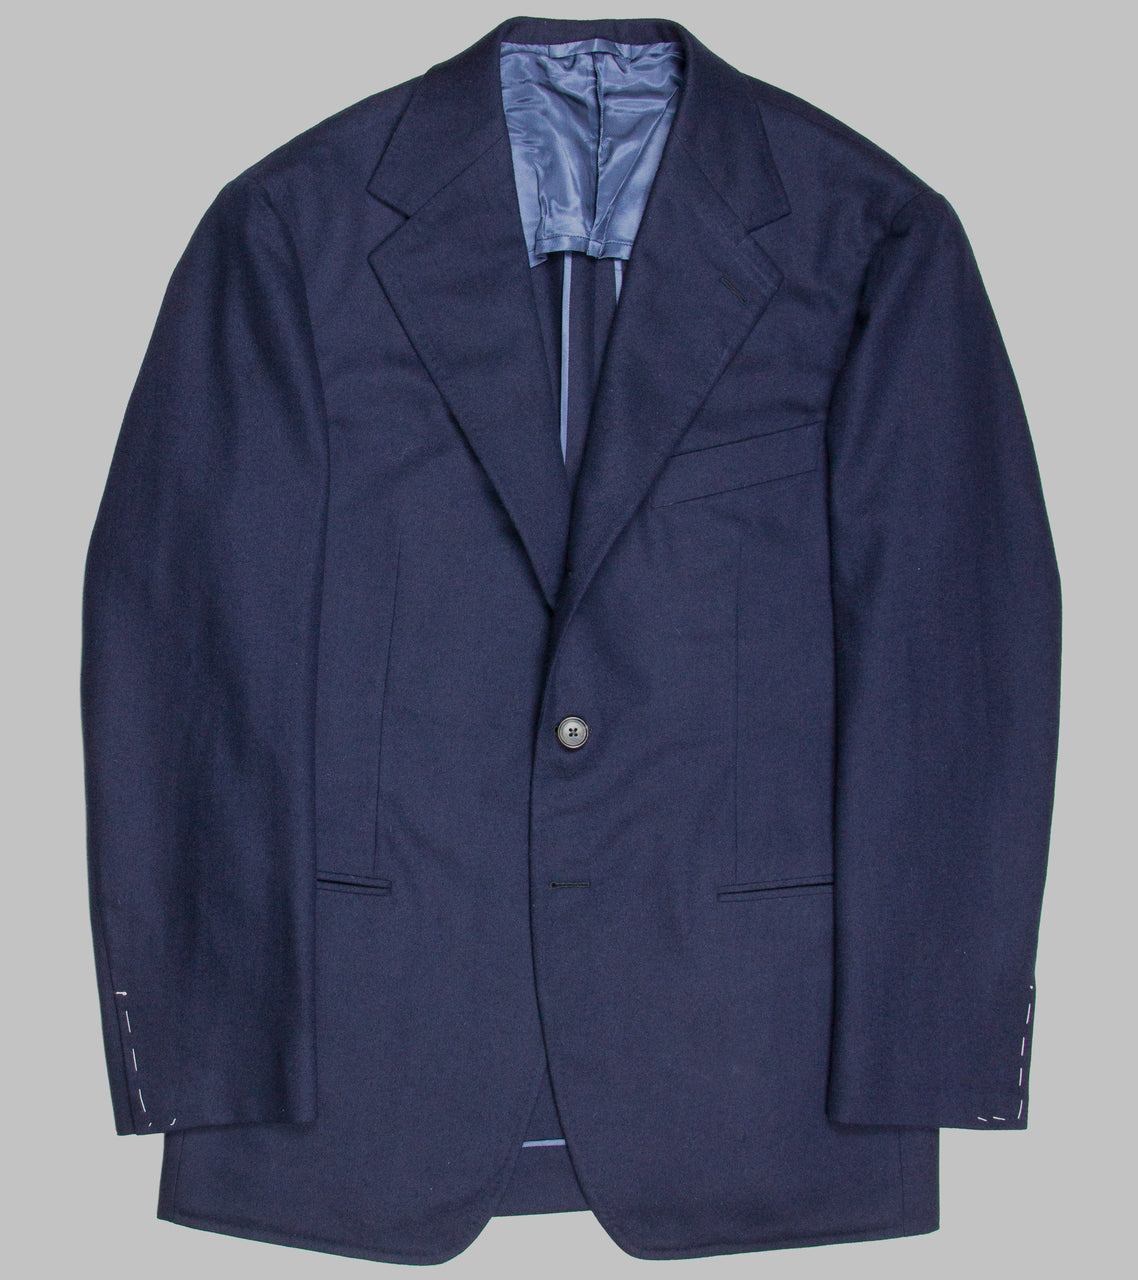 Bryceland's Single Breasted Navy Jacket